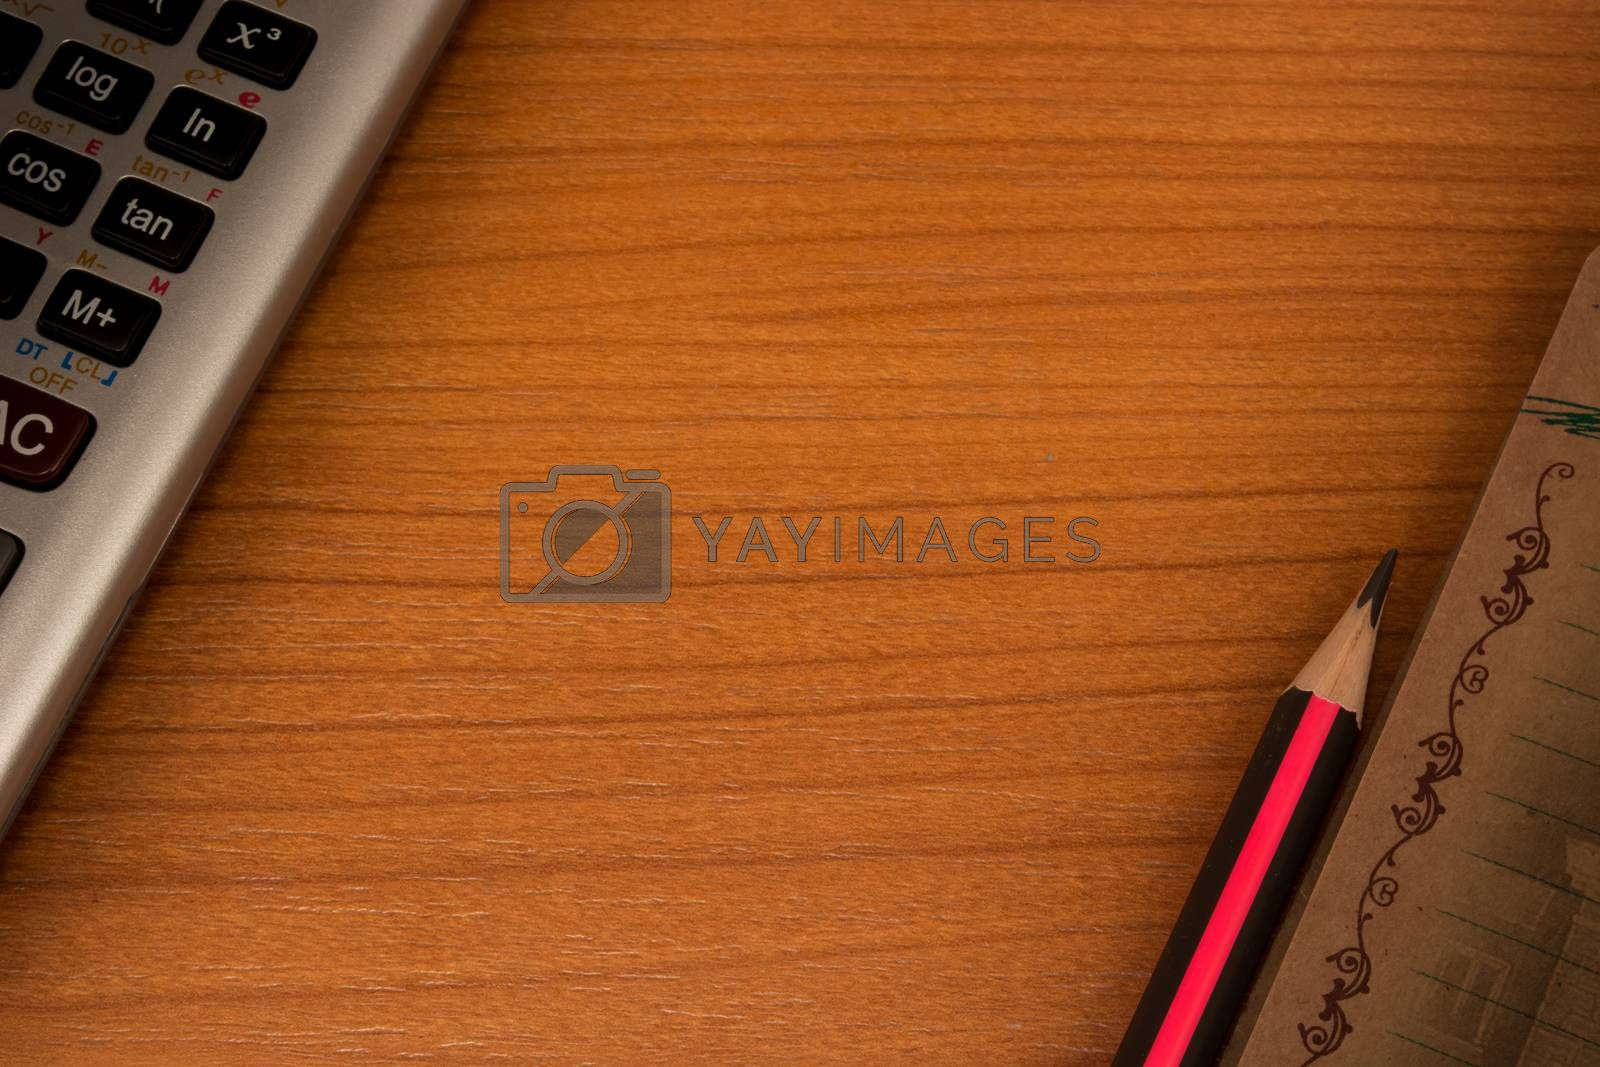 Wooden table with calculator in one corner and pencil and notebook in another